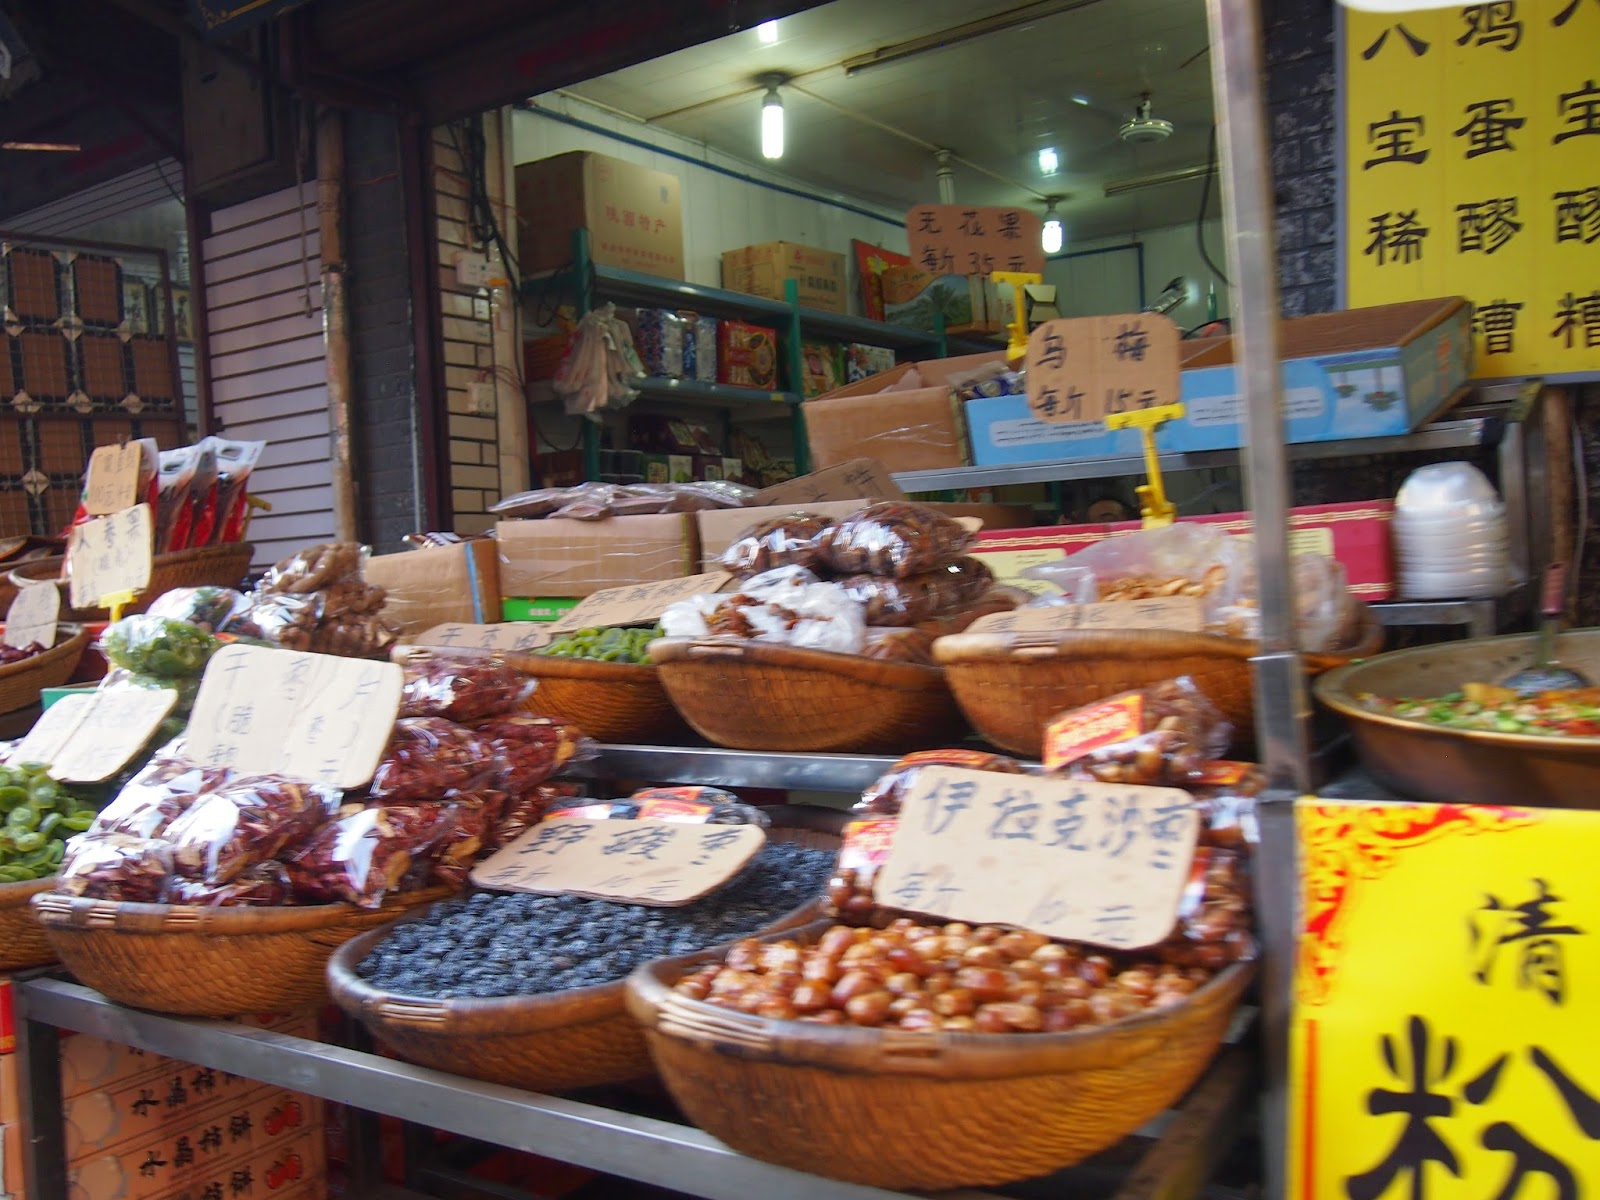 dried fruits and nuts for sale in Xi'an